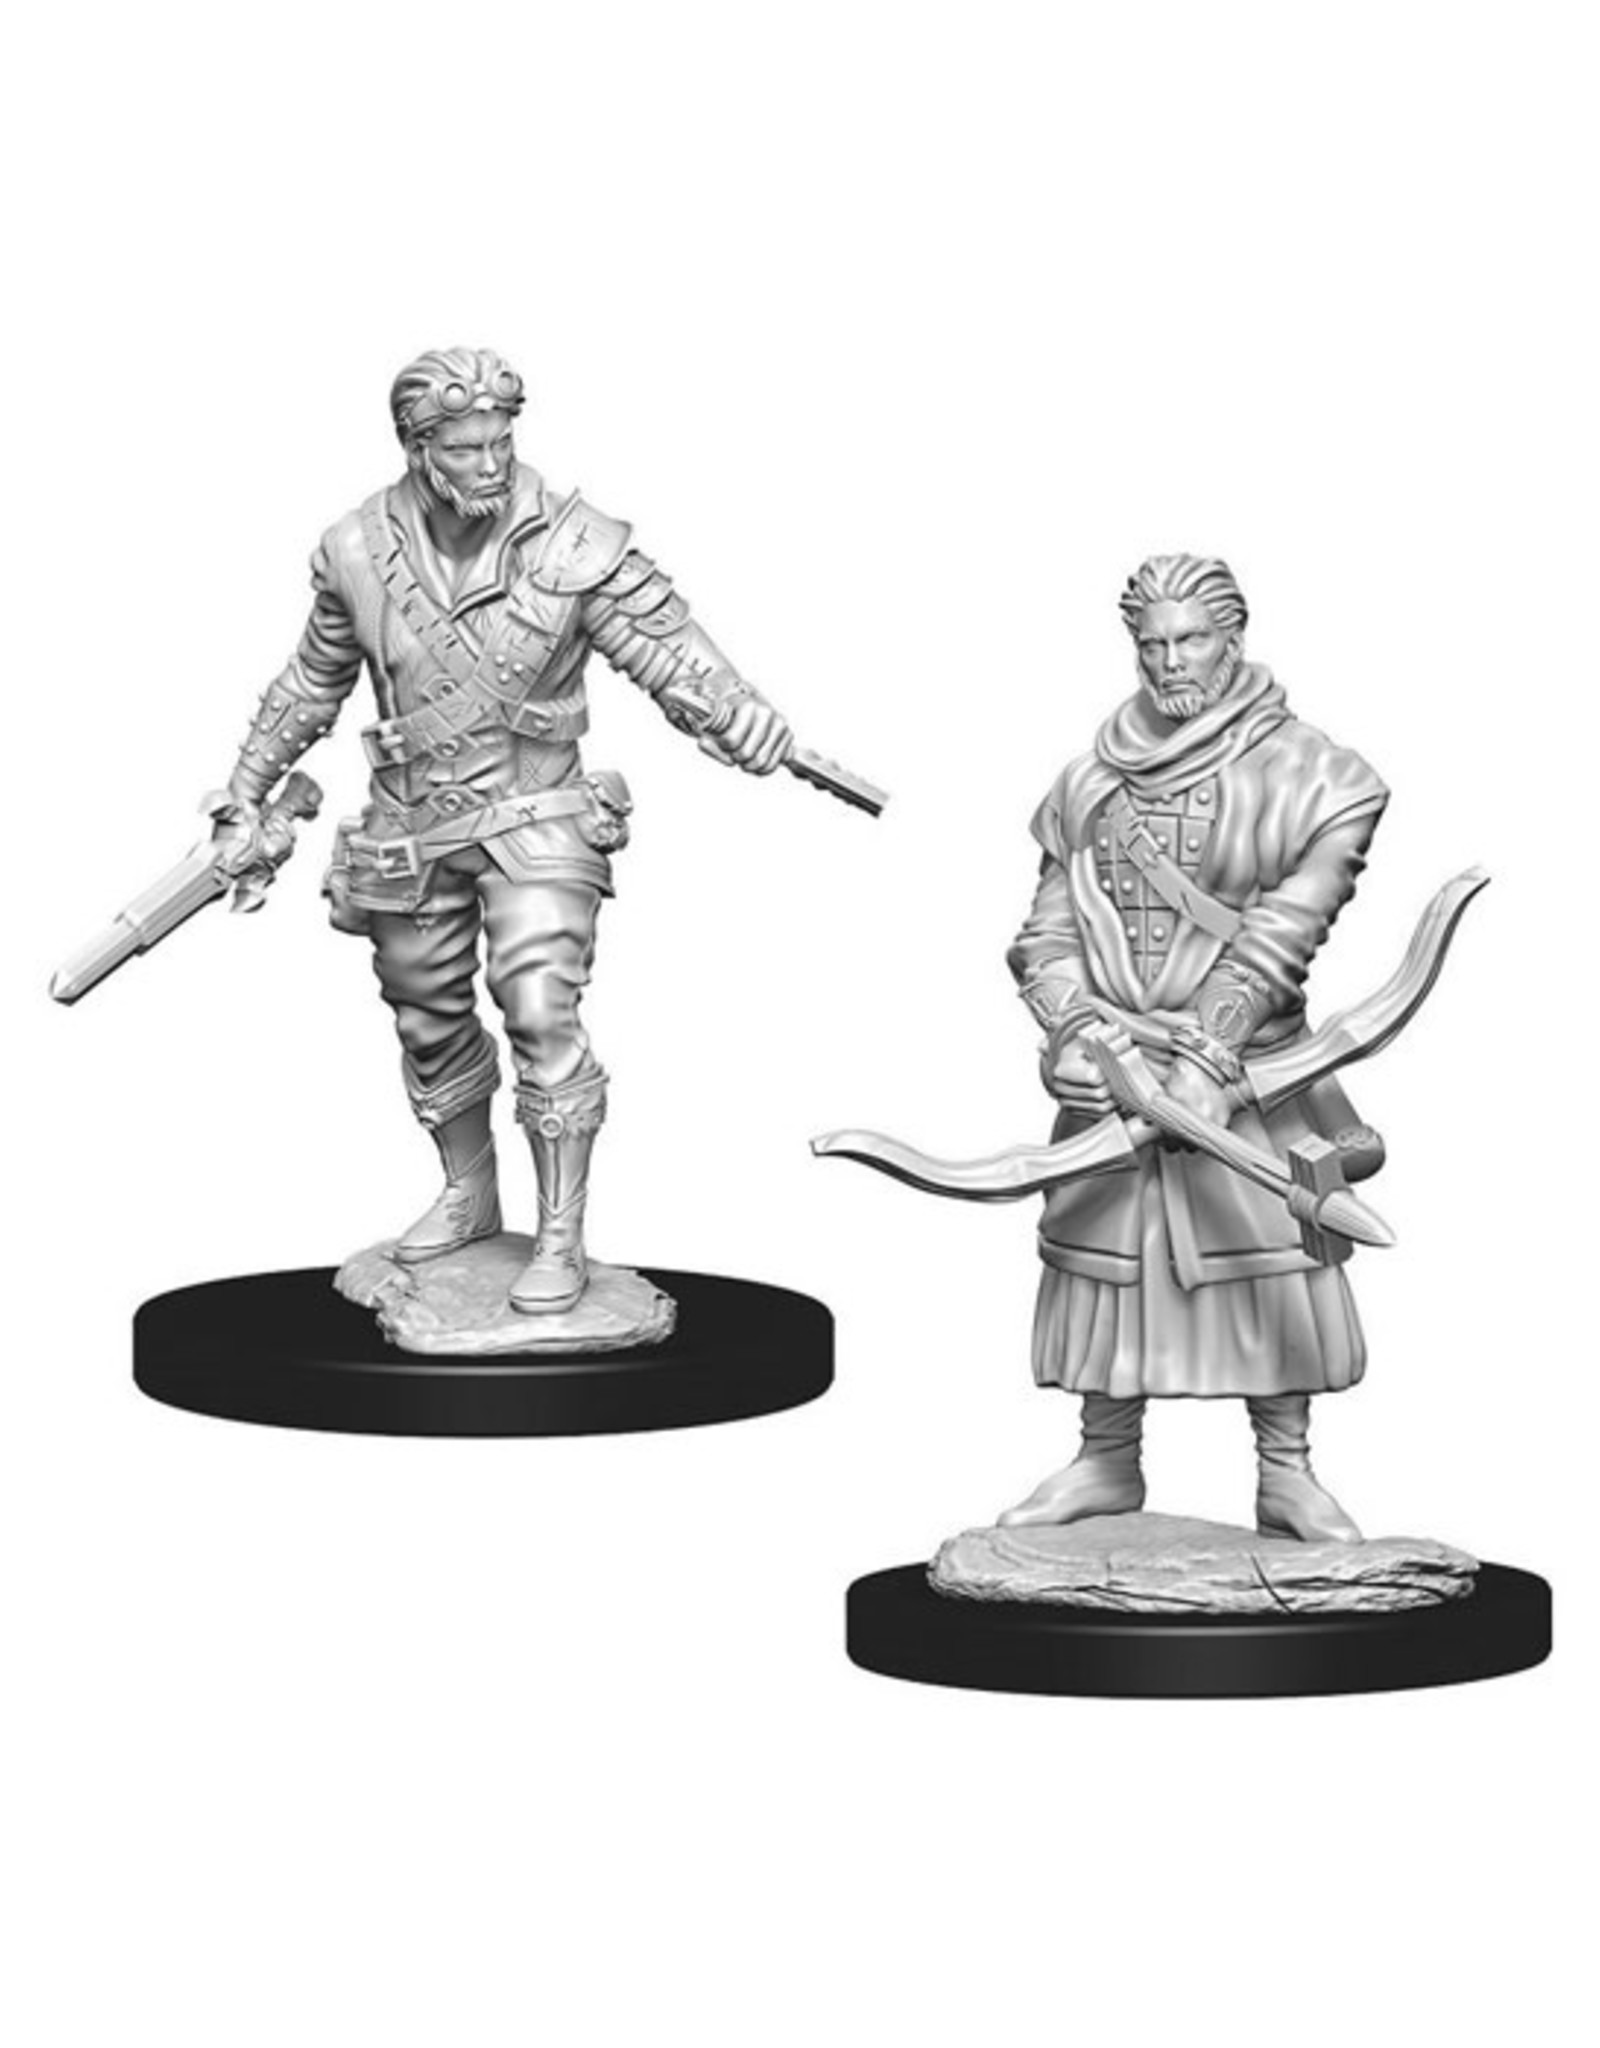 Dungeons & Dragons Dungeons & Dragons: Nolzur's - Human Male Rogue